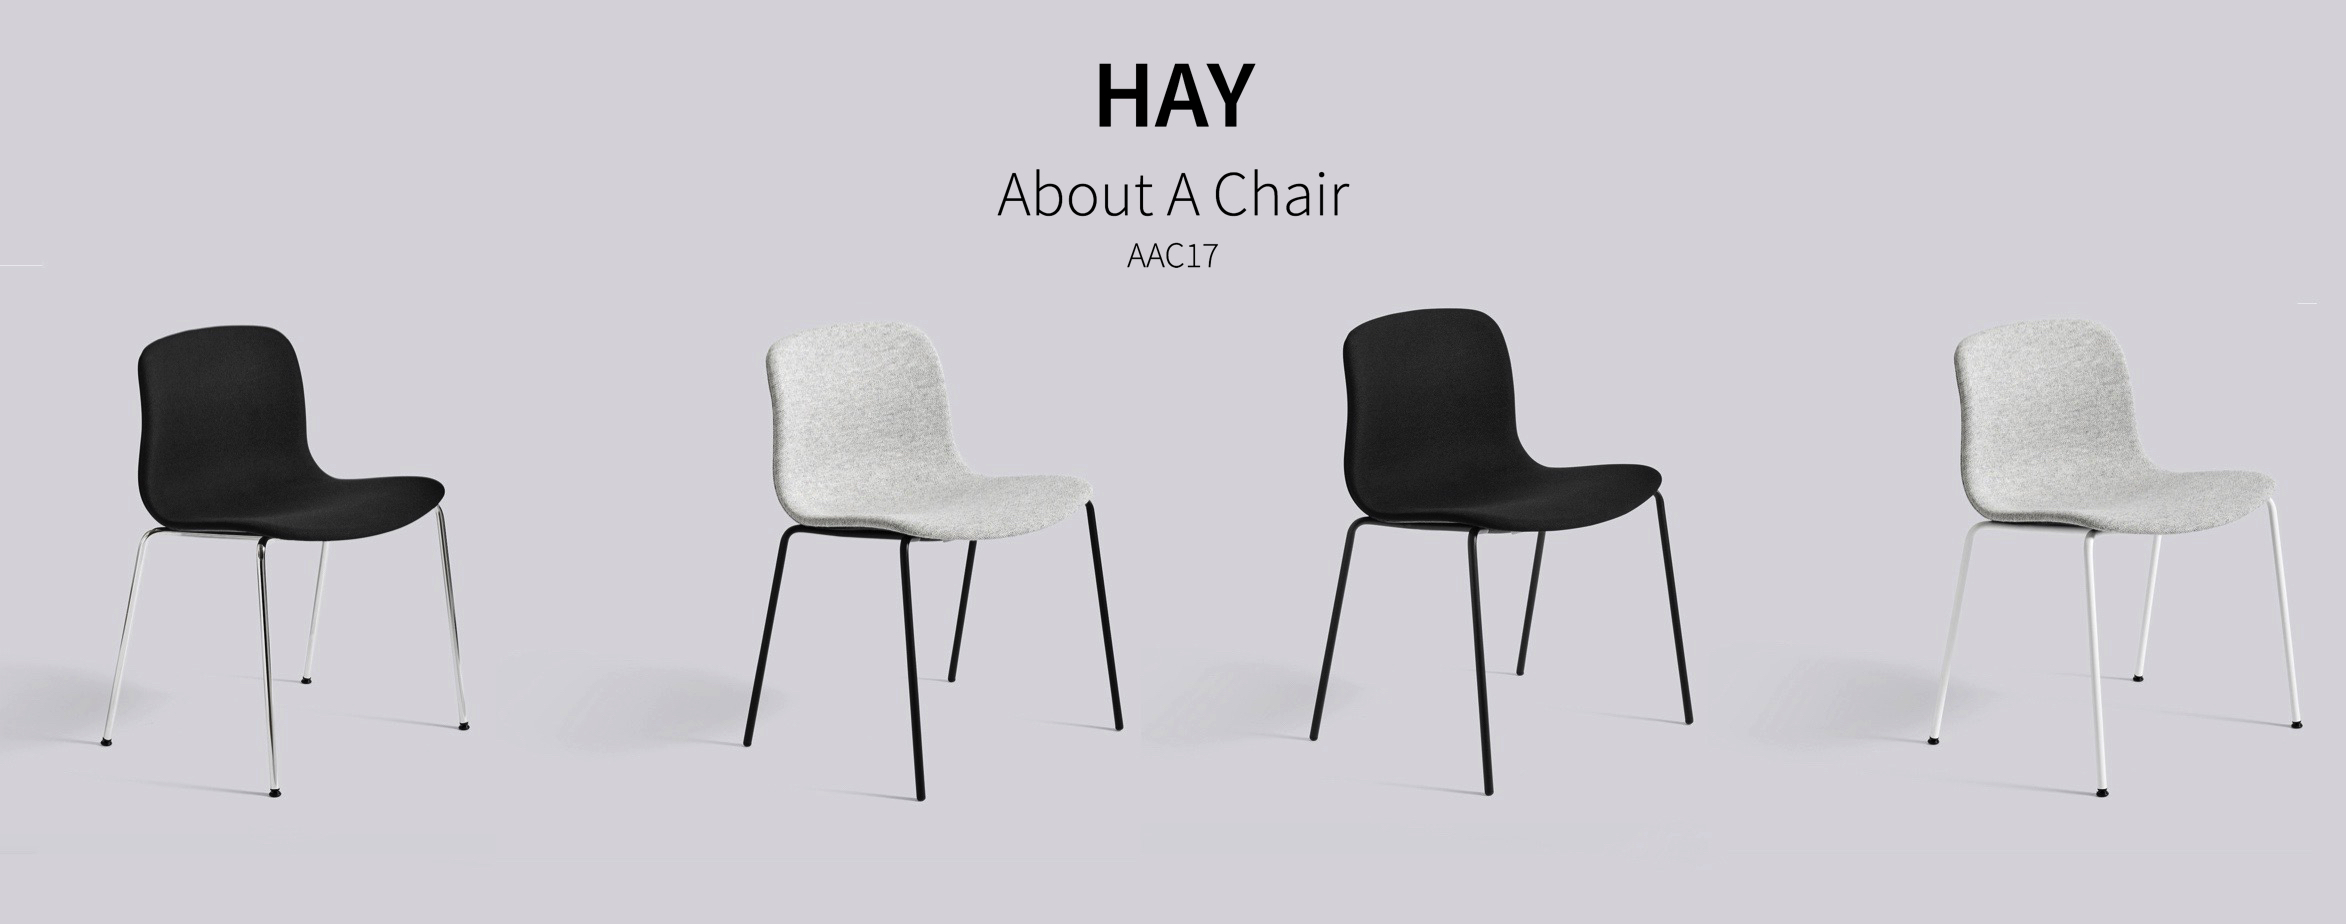 hay about a chair aac17. Black Bedroom Furniture Sets. Home Design Ideas